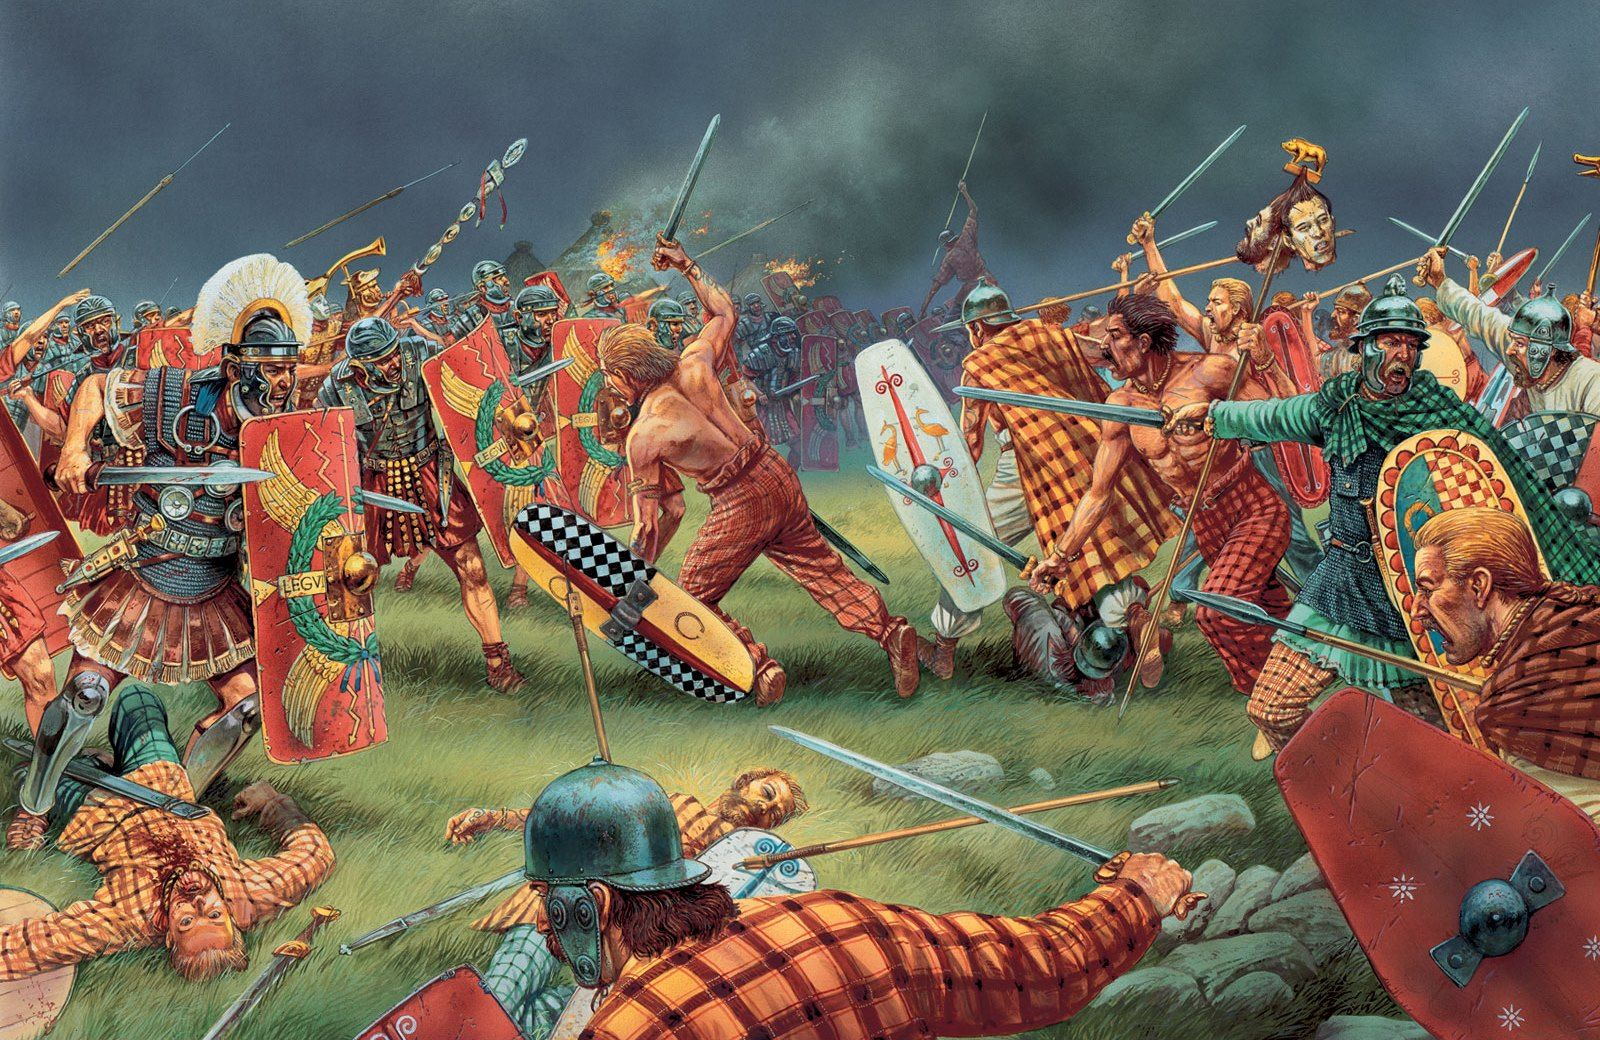 a history of the roman empires battles with gauls The romans met the gauls in pitched battle at the battle of the constitutional history of the roman republic can be the roman republic and the roman empire.